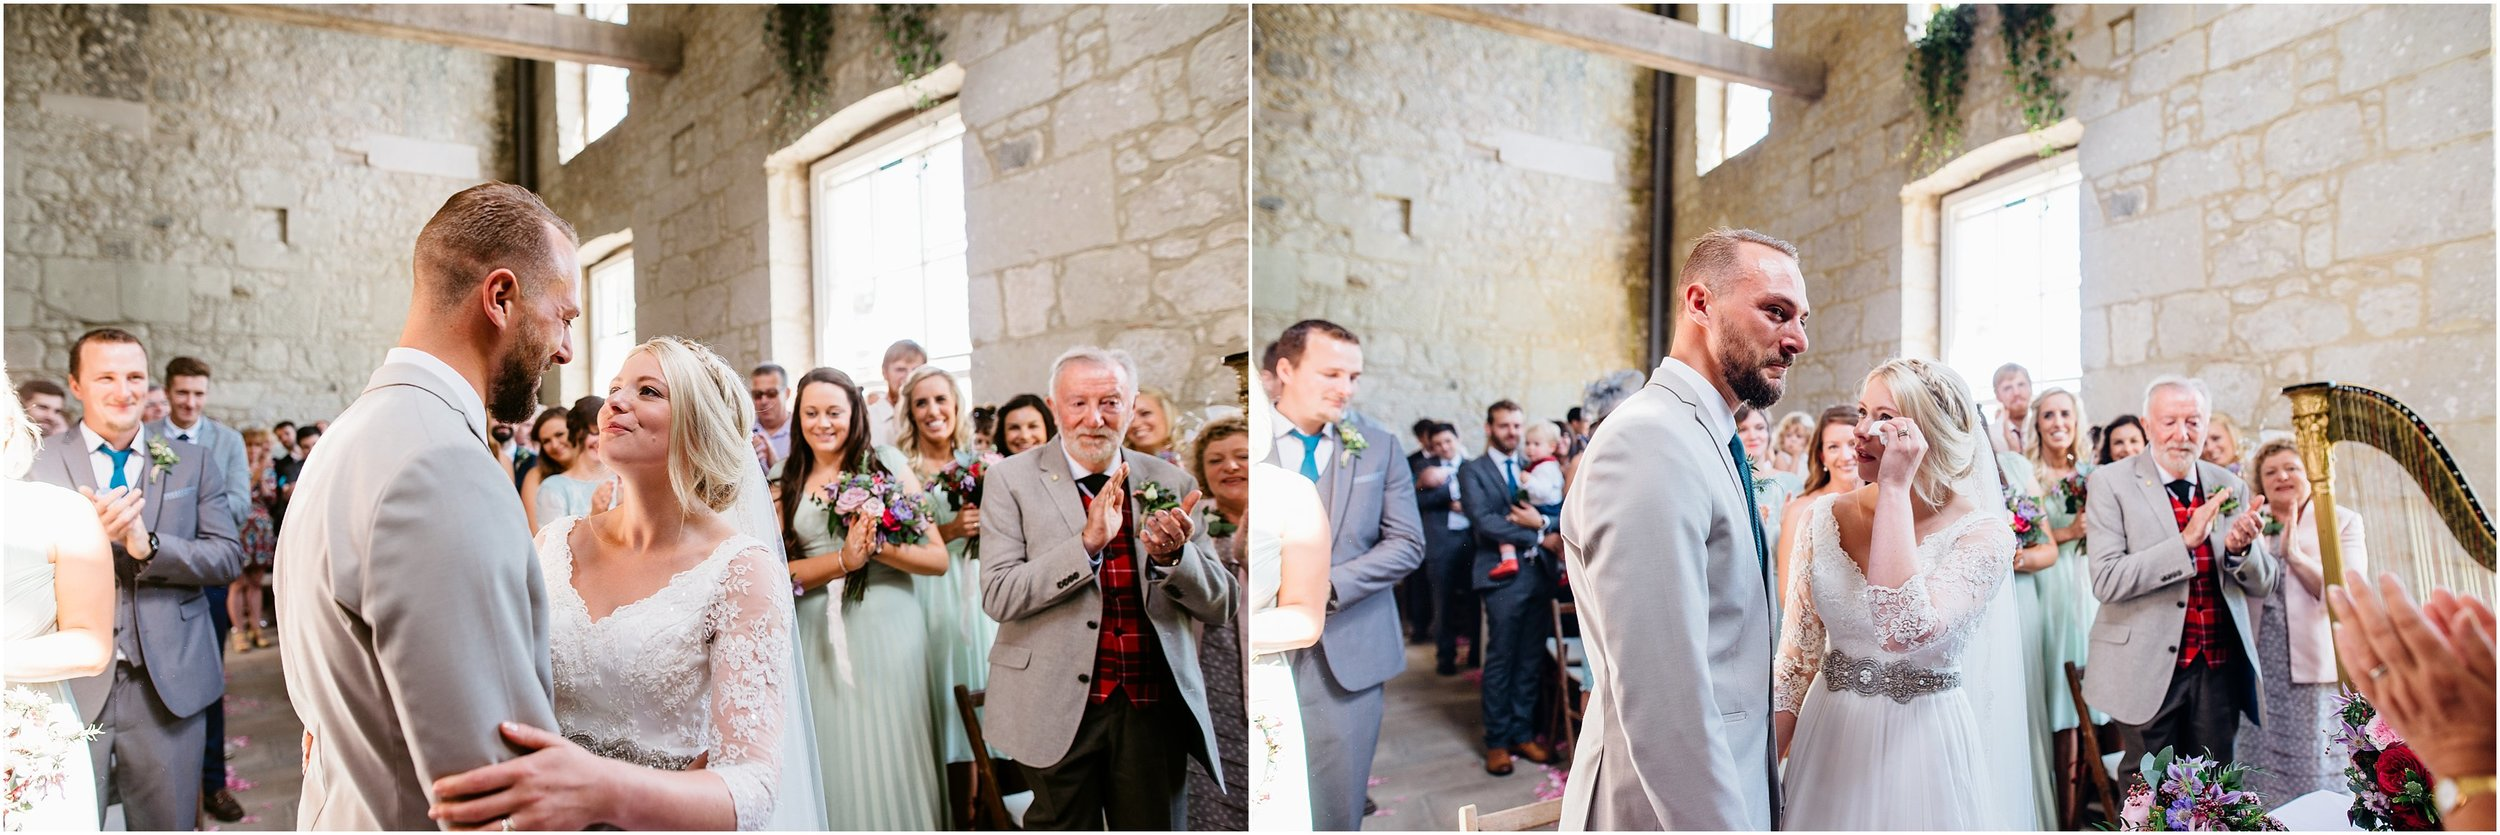 ENGLISH COUNTRY HOUSE WEDDING-RUSTIC FLORAL CHIC_0036.jpg